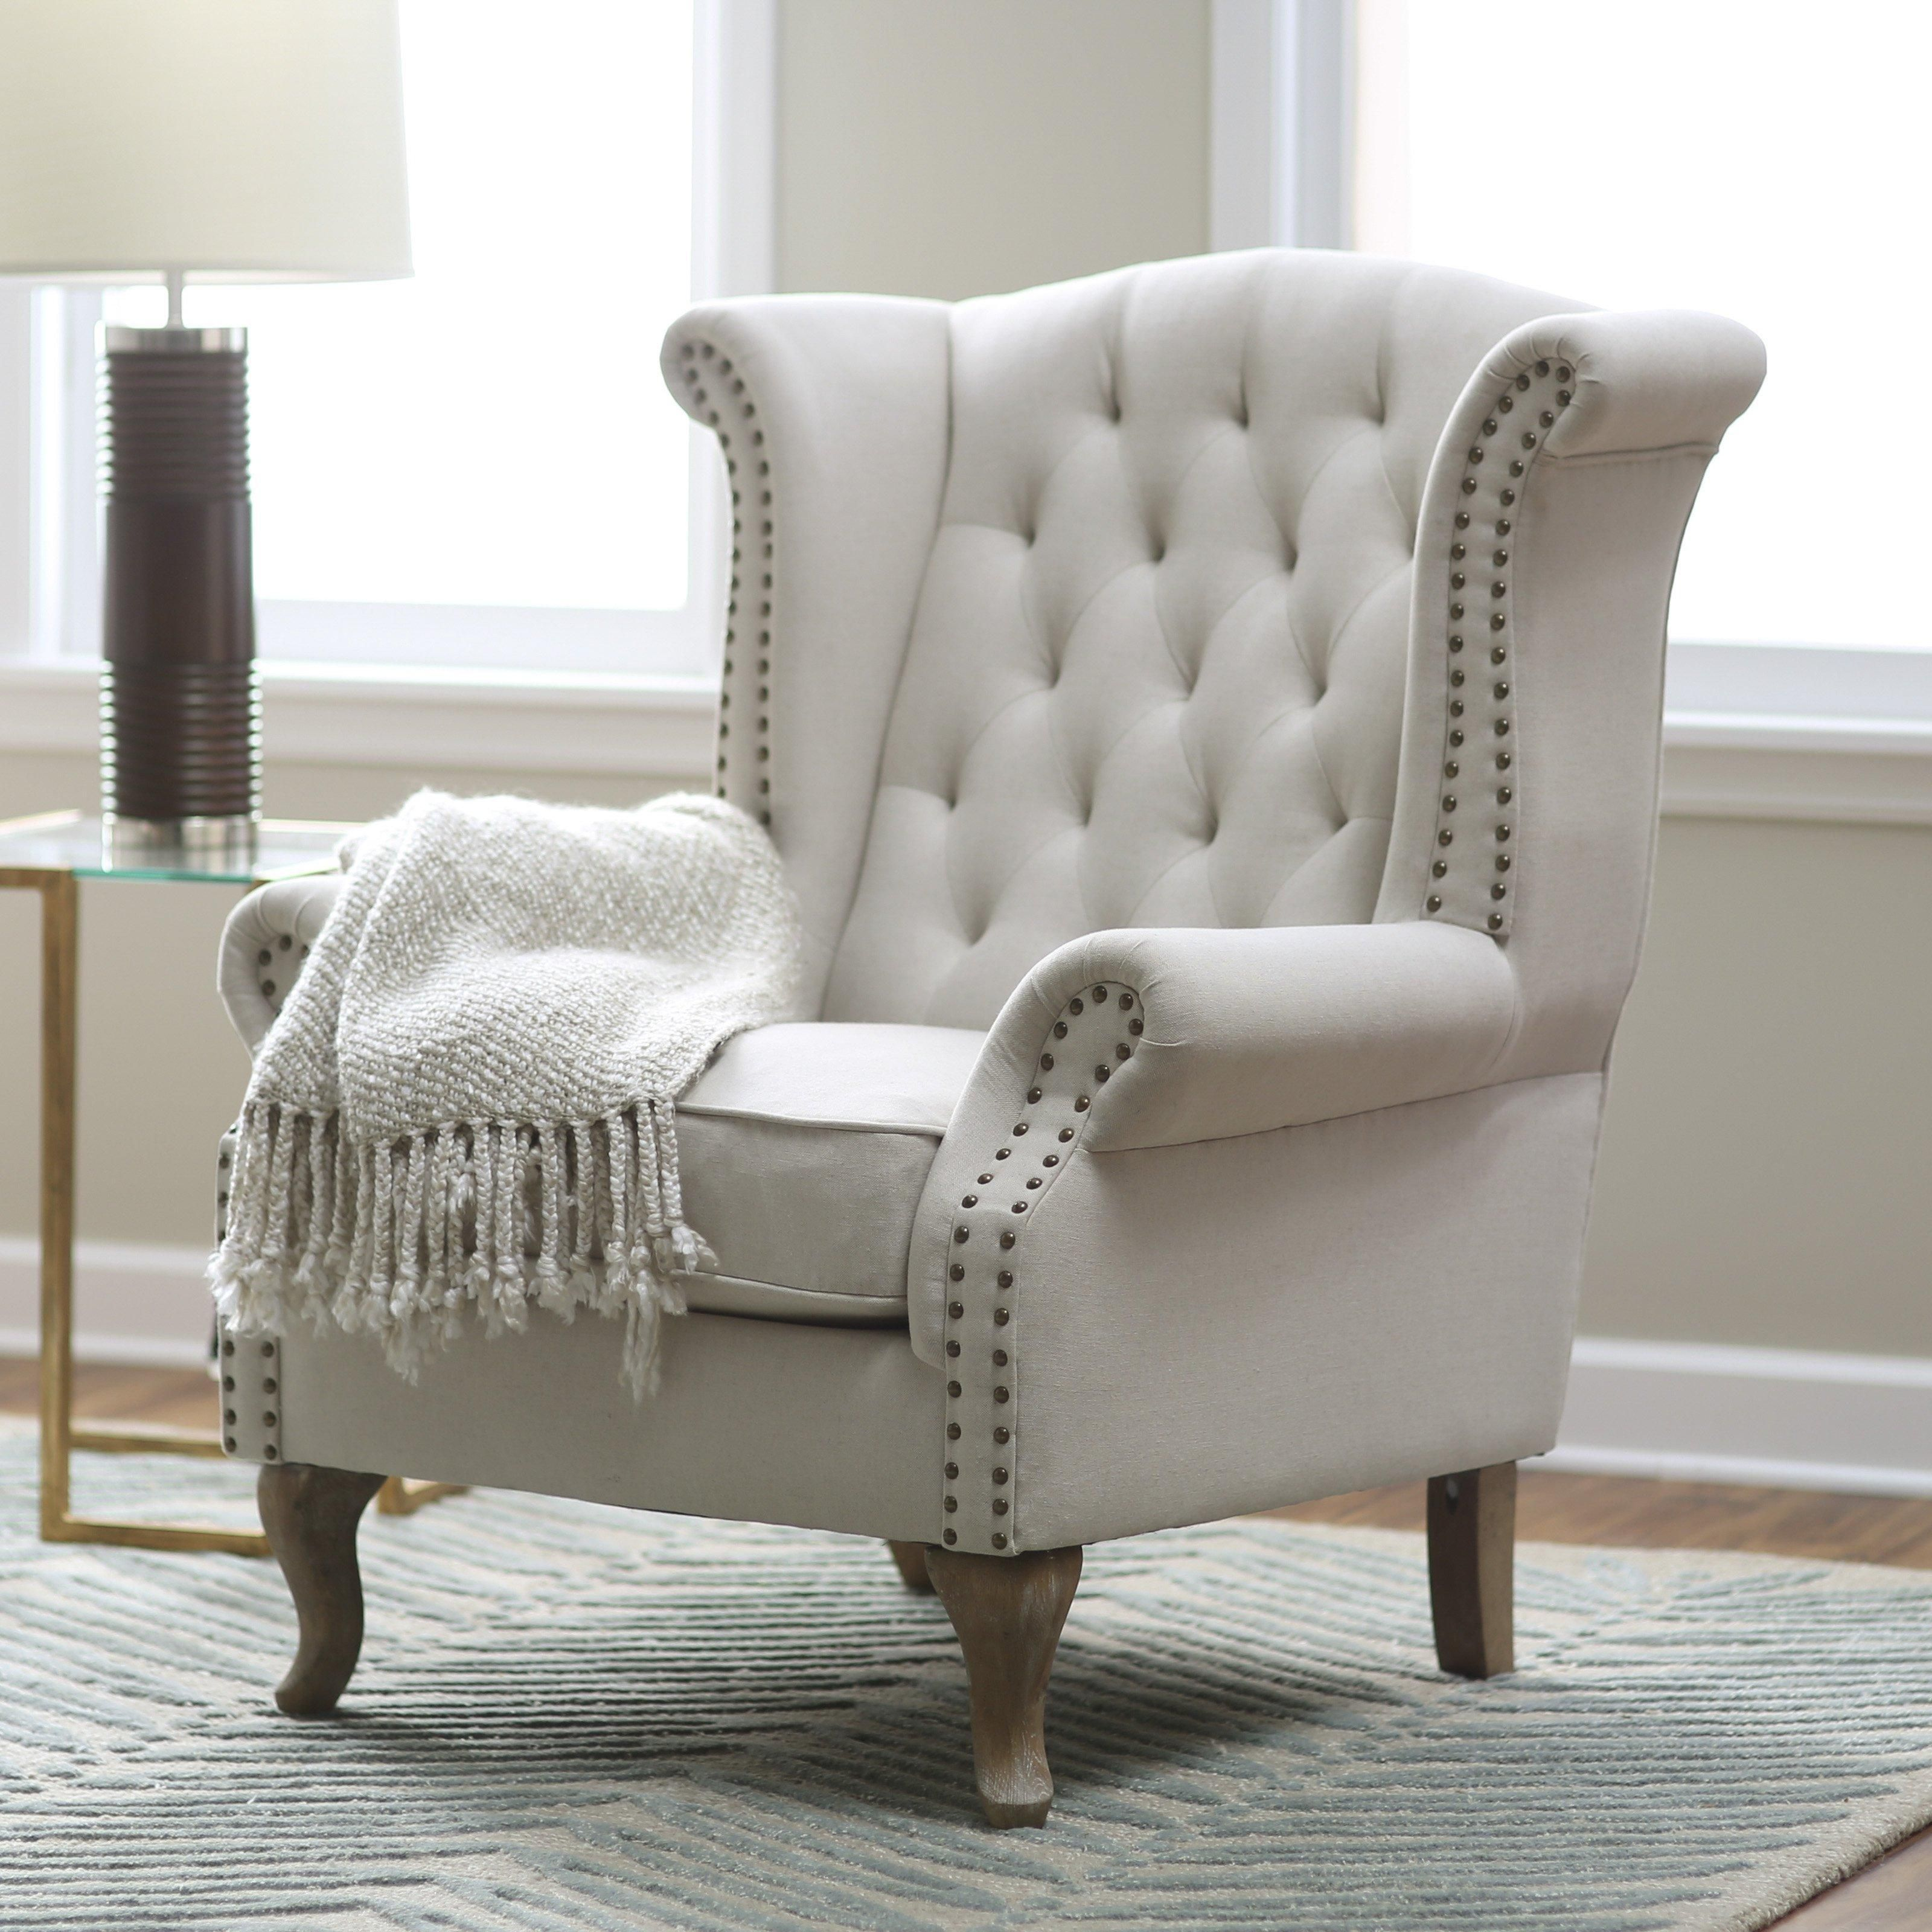 Elegant Traditional Living Room Furniture: Chair Types Living Room Chair Types Living Room